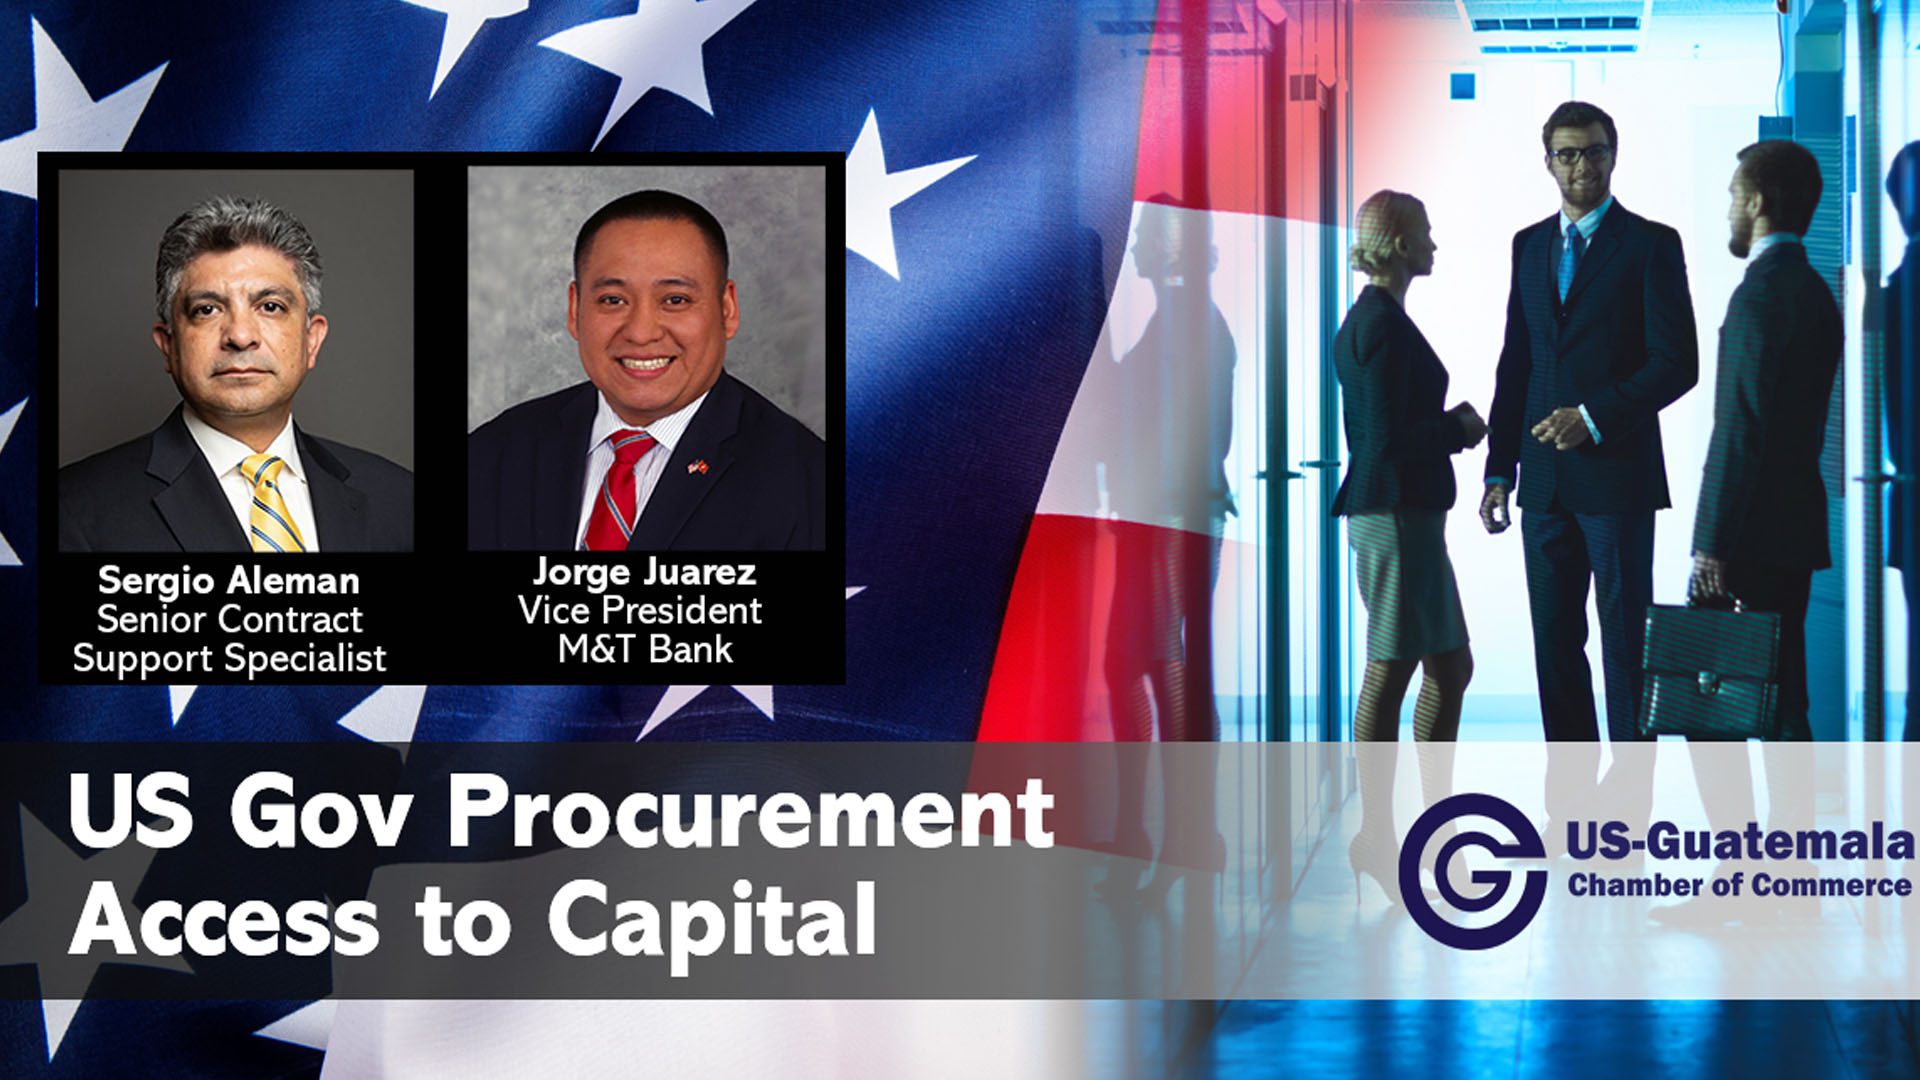 US Gov Procurement / Access to Capital / LEDC